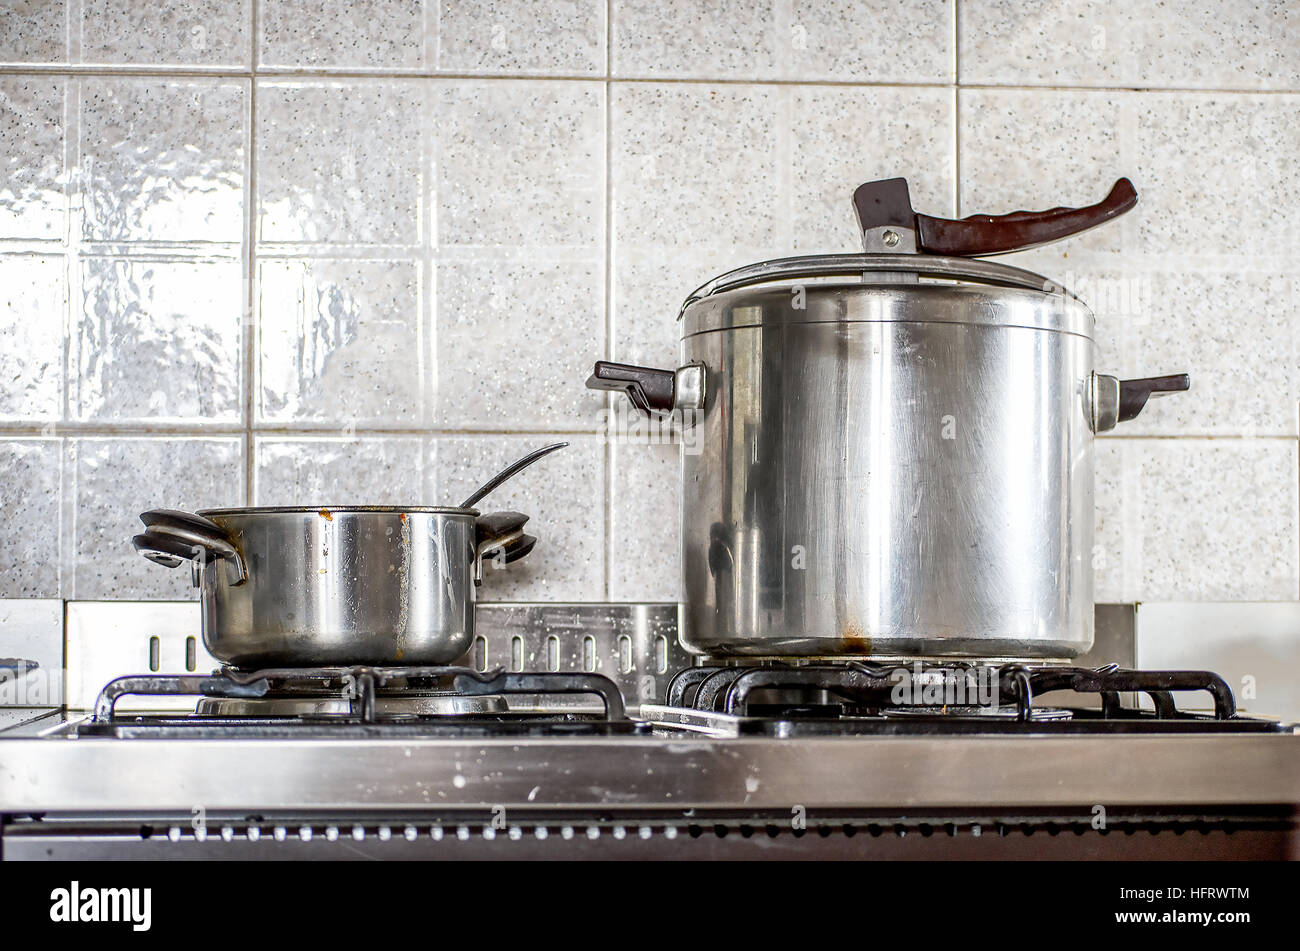 pressure cooker kitchen - Stock Image